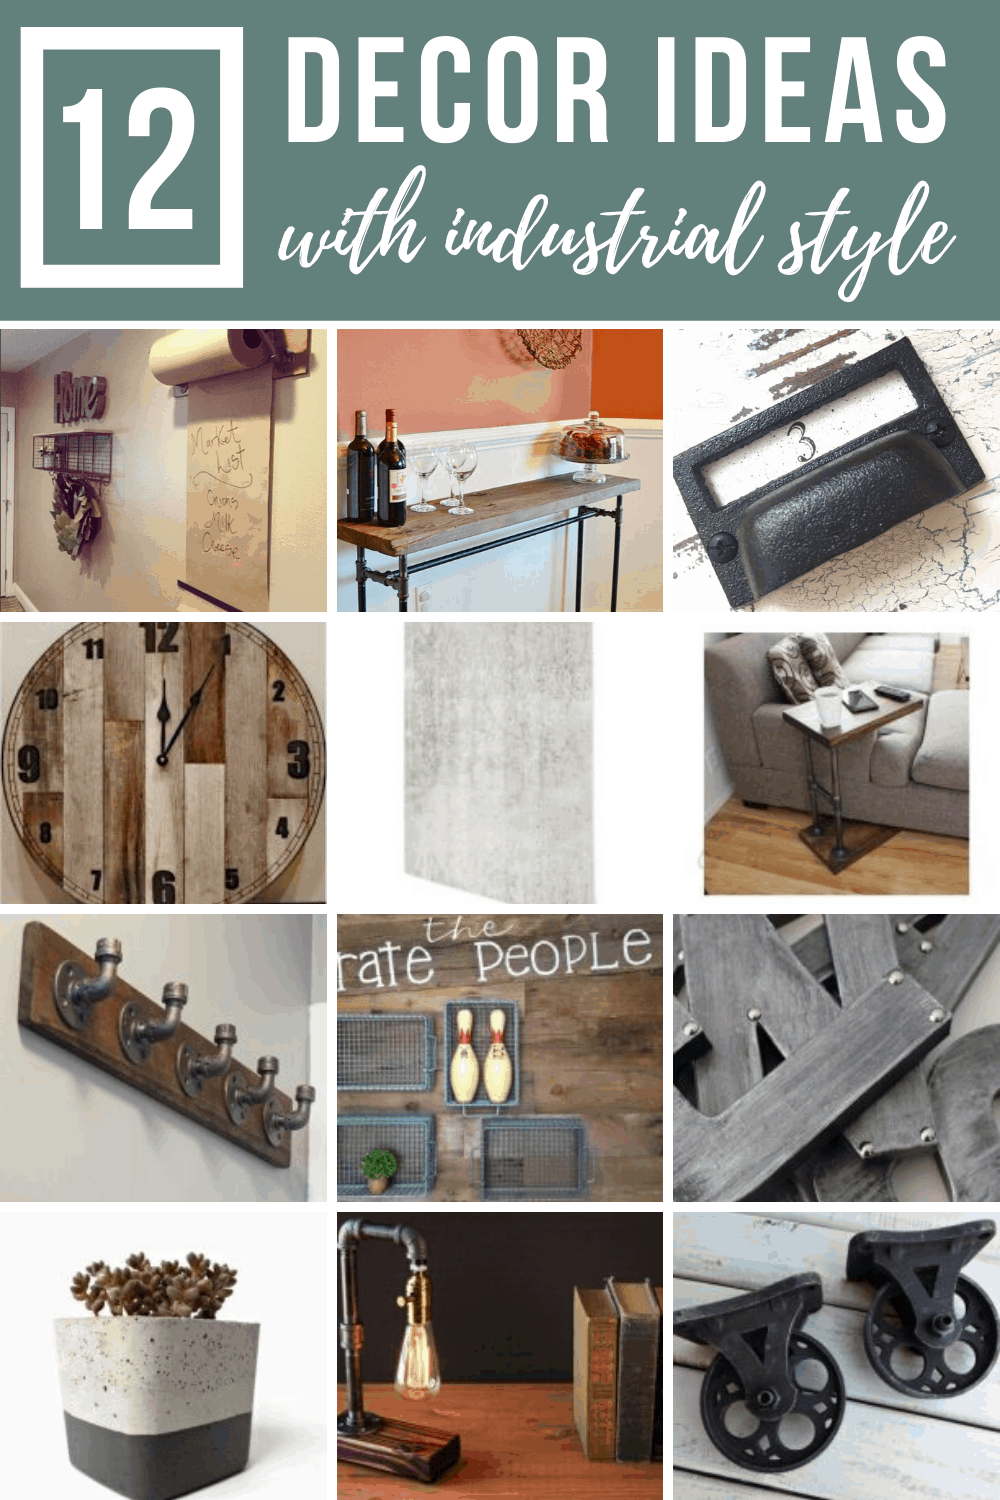 12 Decor Ideas with Industrial Style